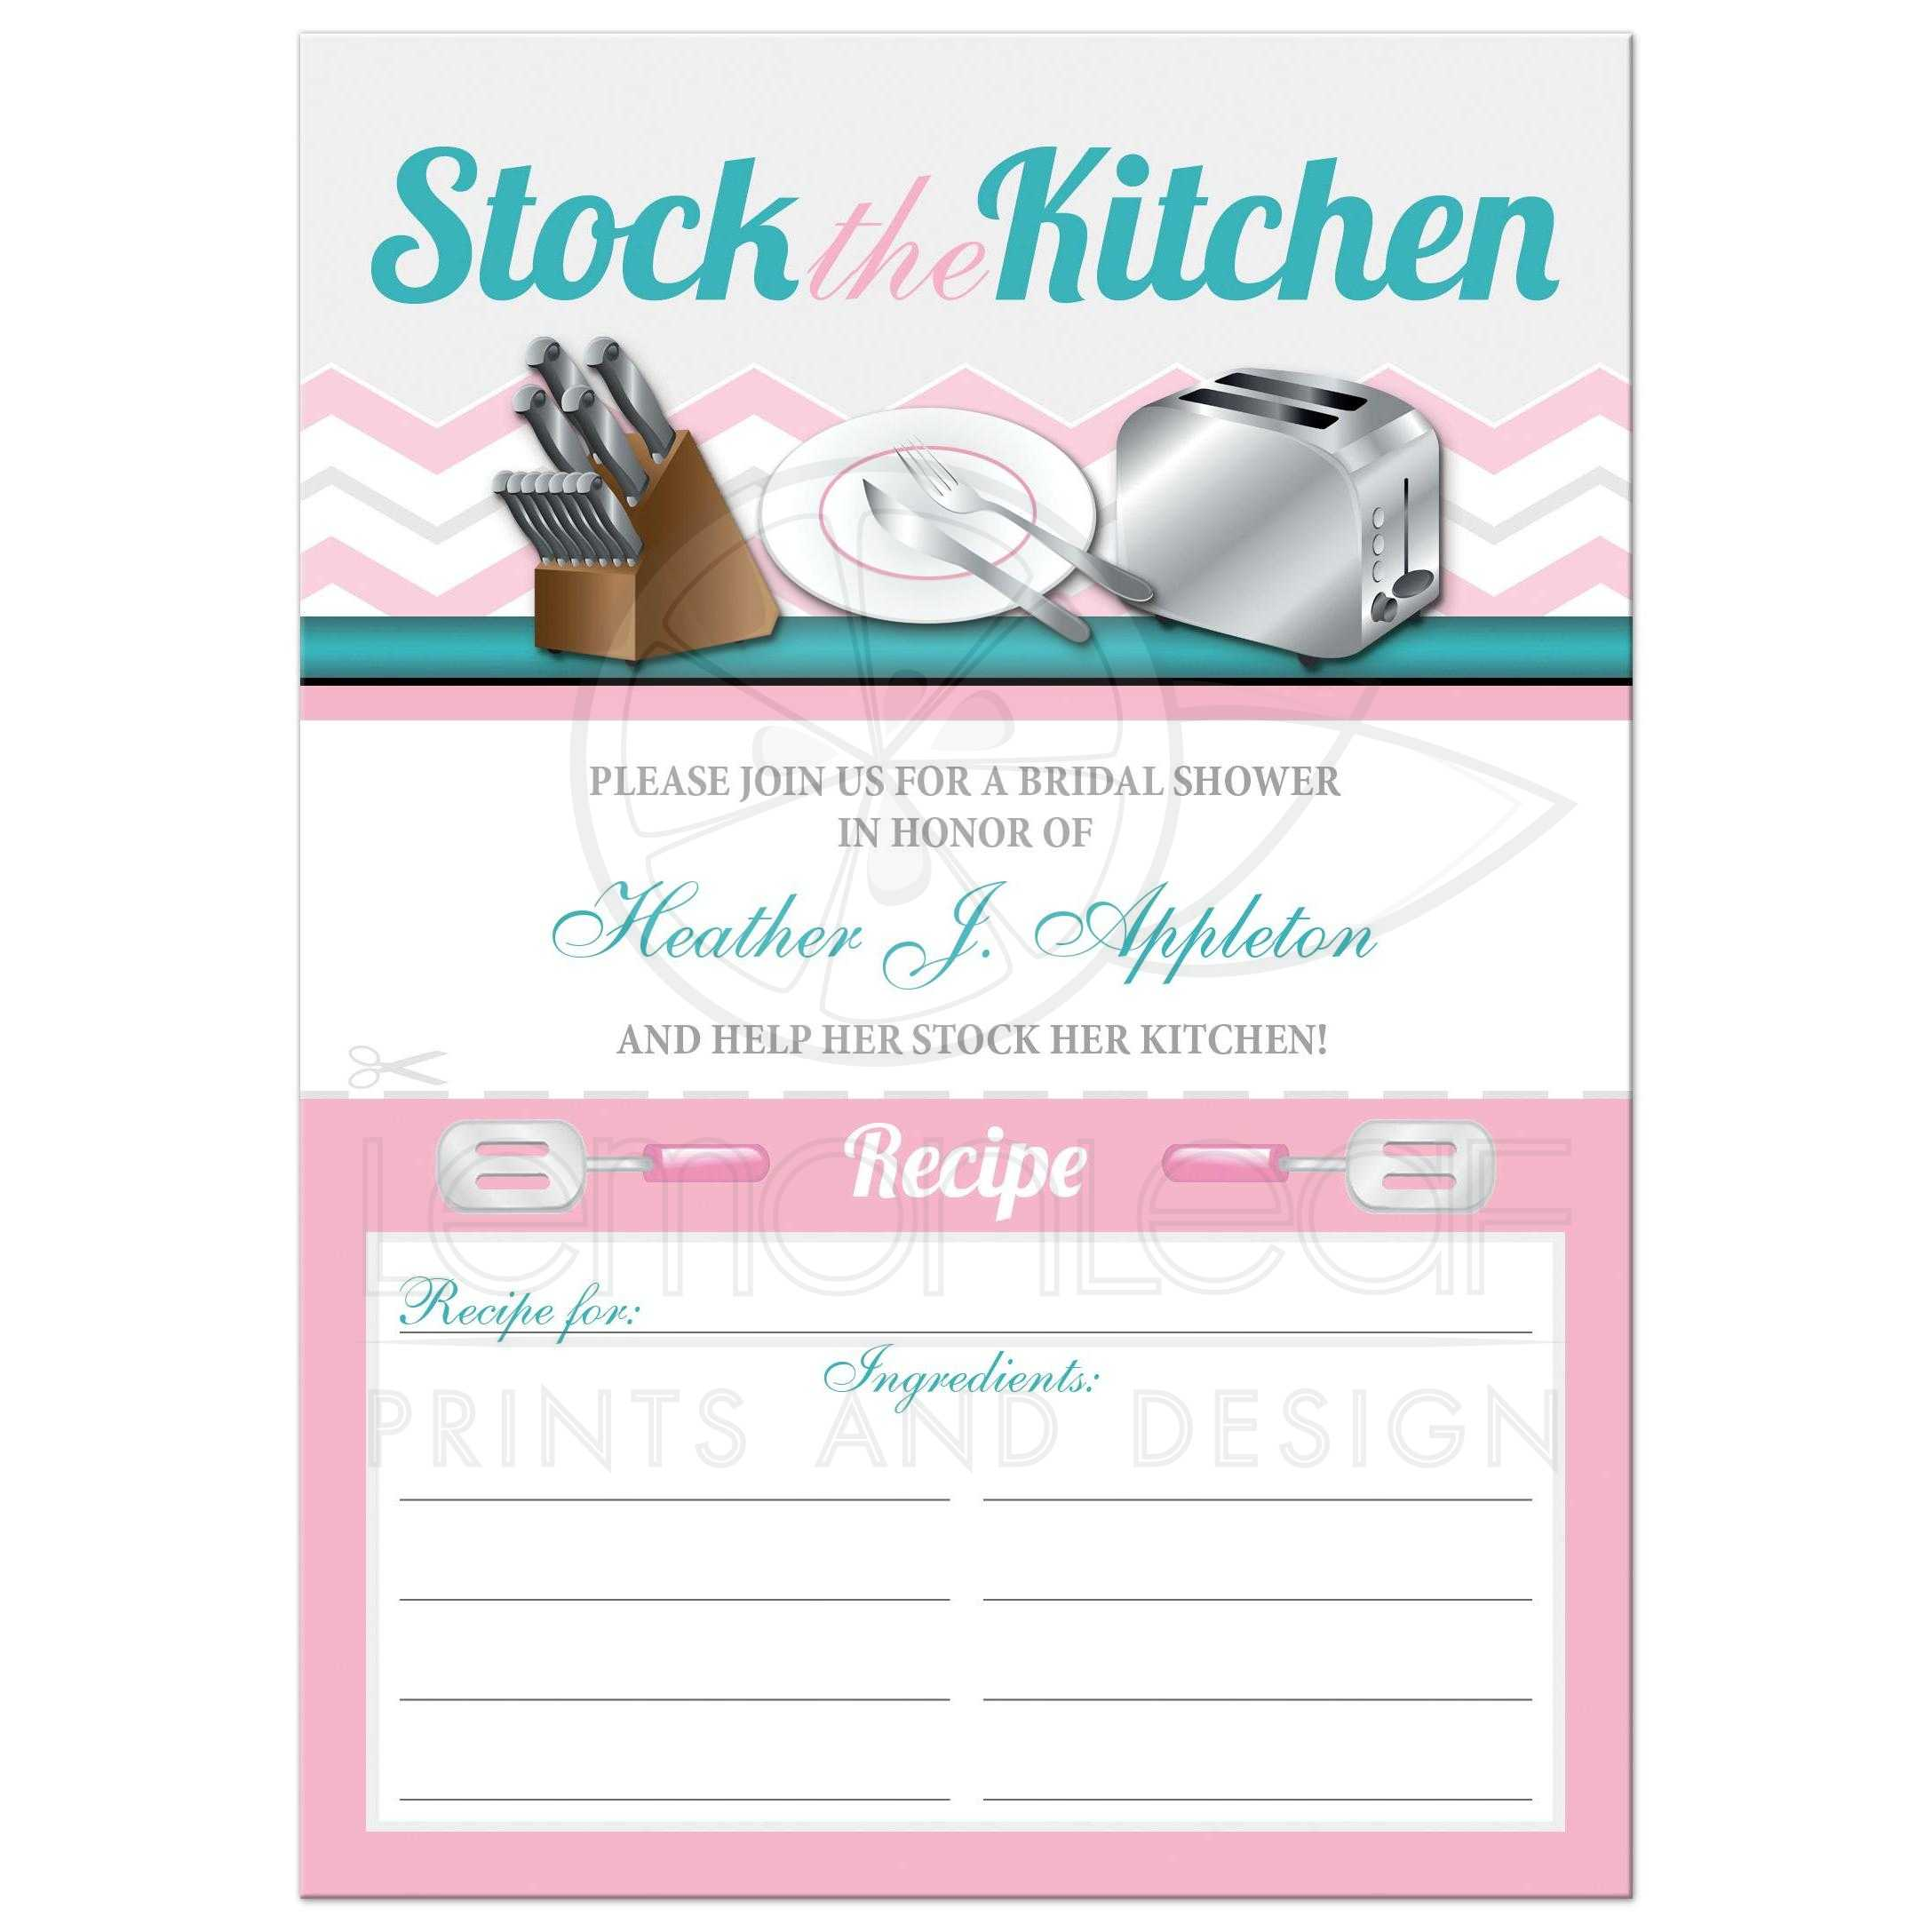 Bridal shower invitations stock the kitchen pink recipe card invites filmwisefo